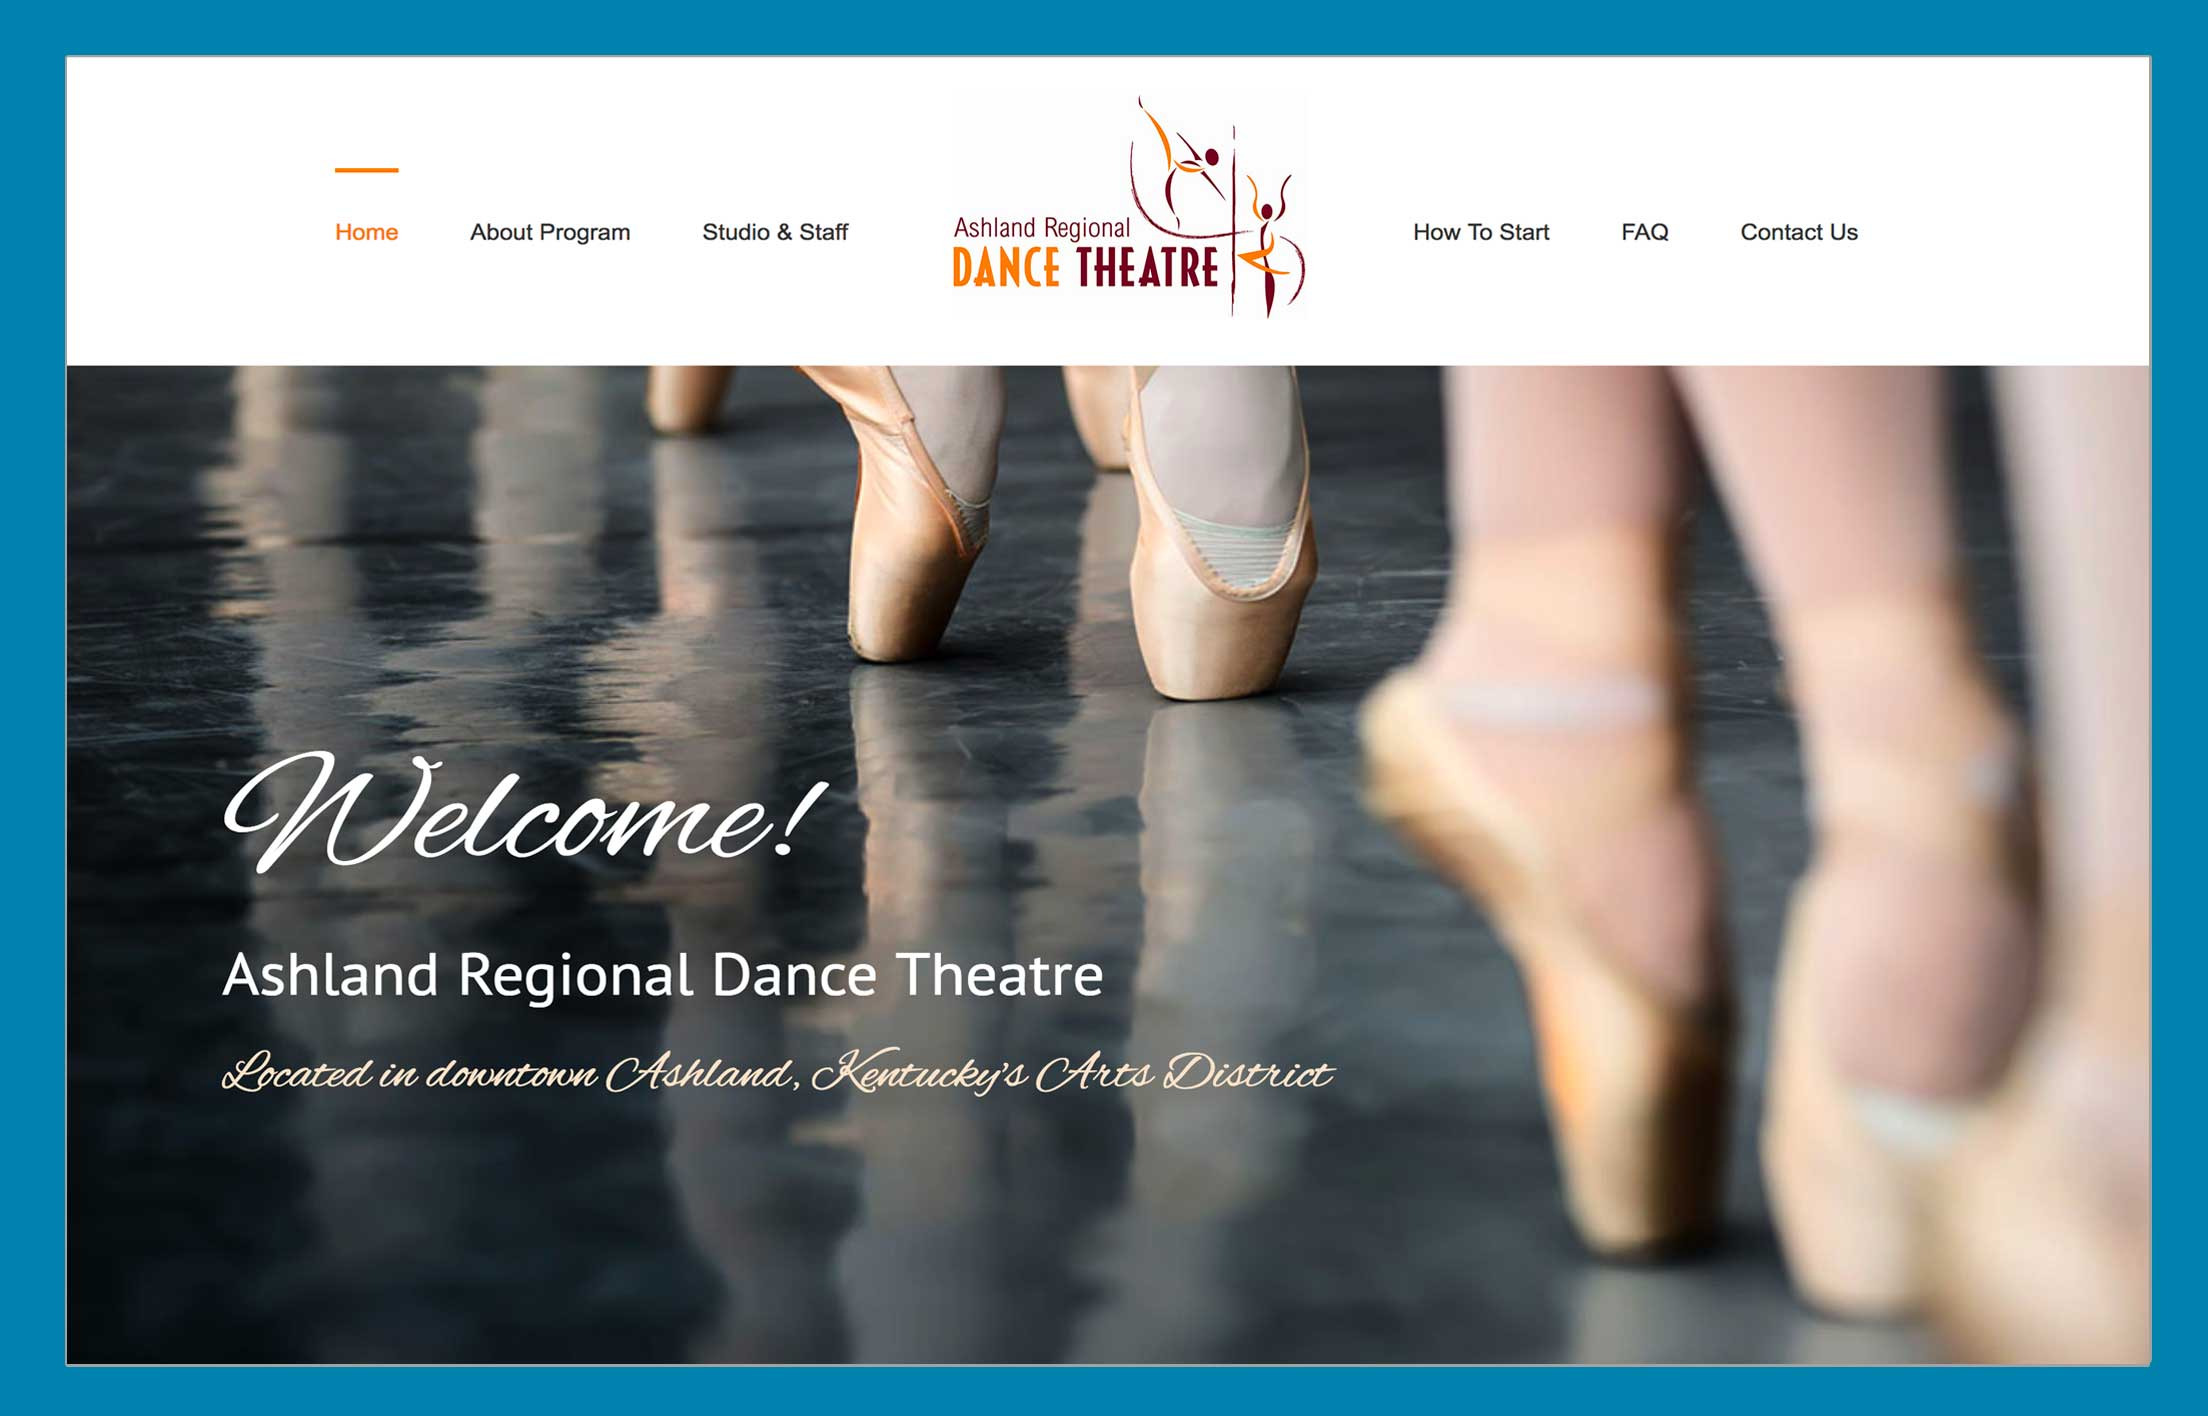 Ashland Regional Dance Theatre